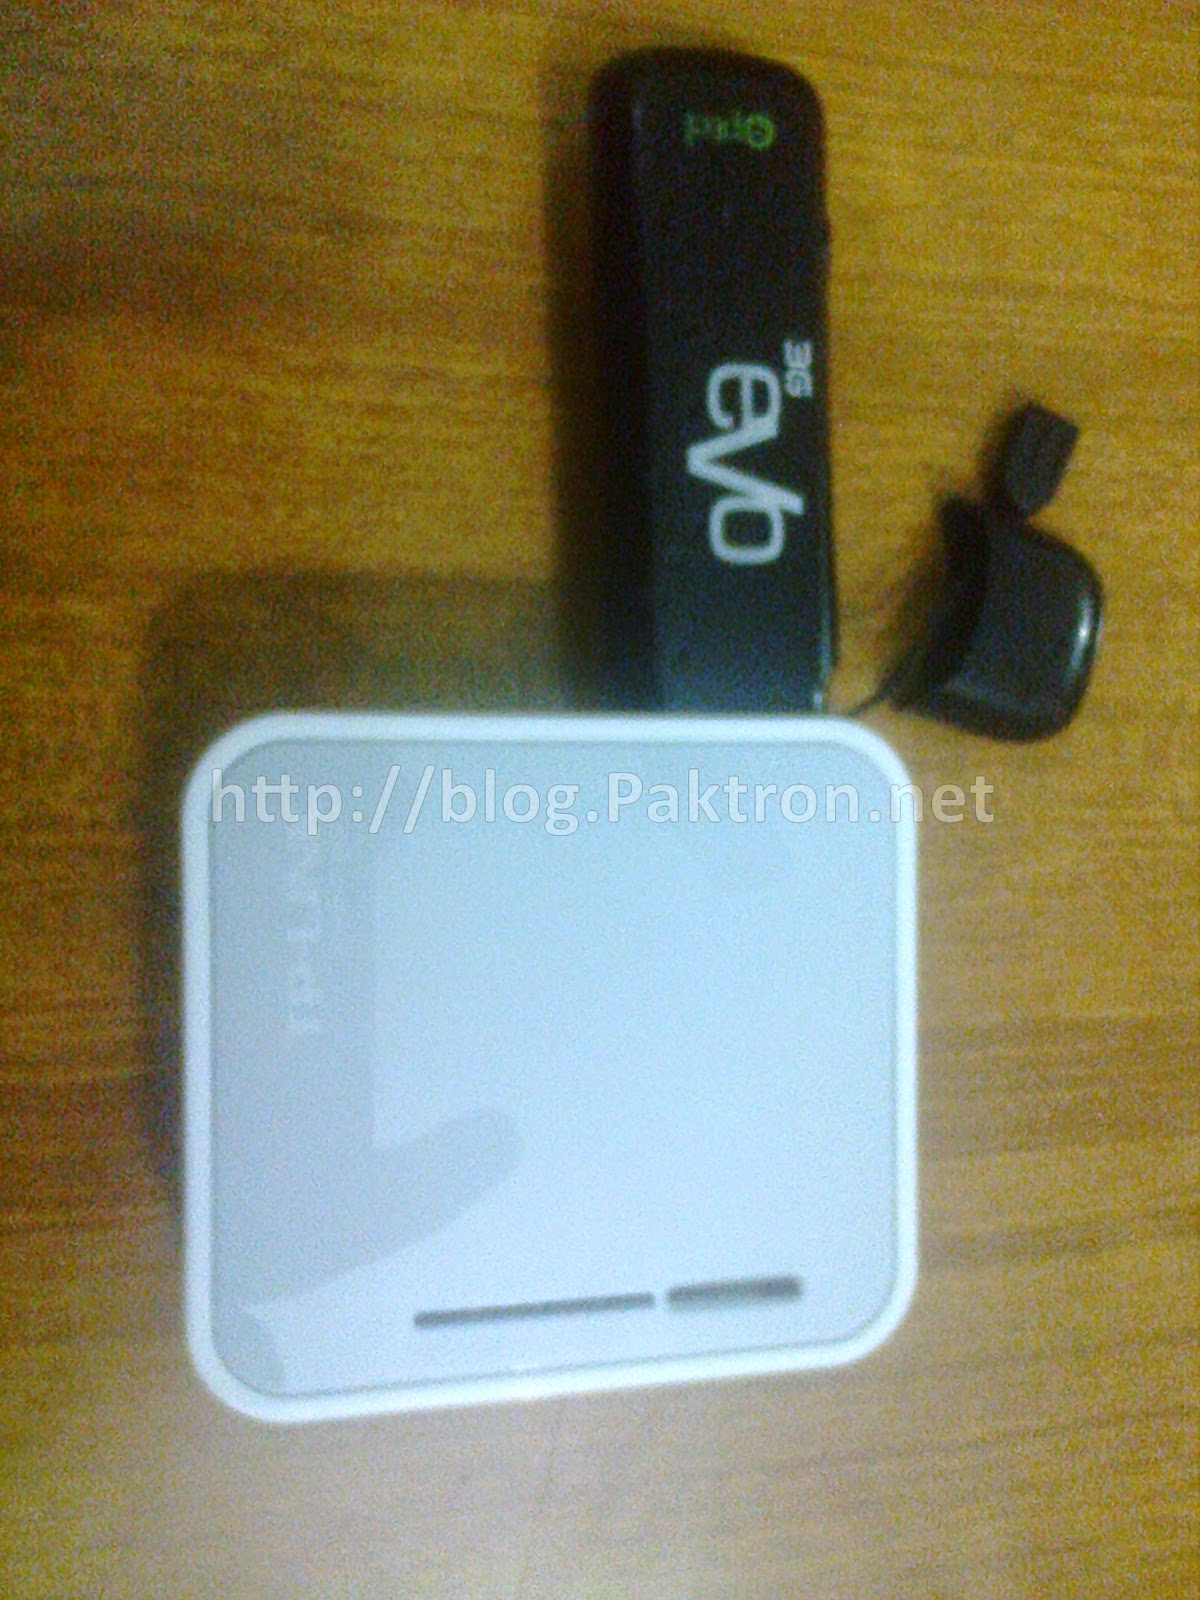 4G with 3G usb device and router